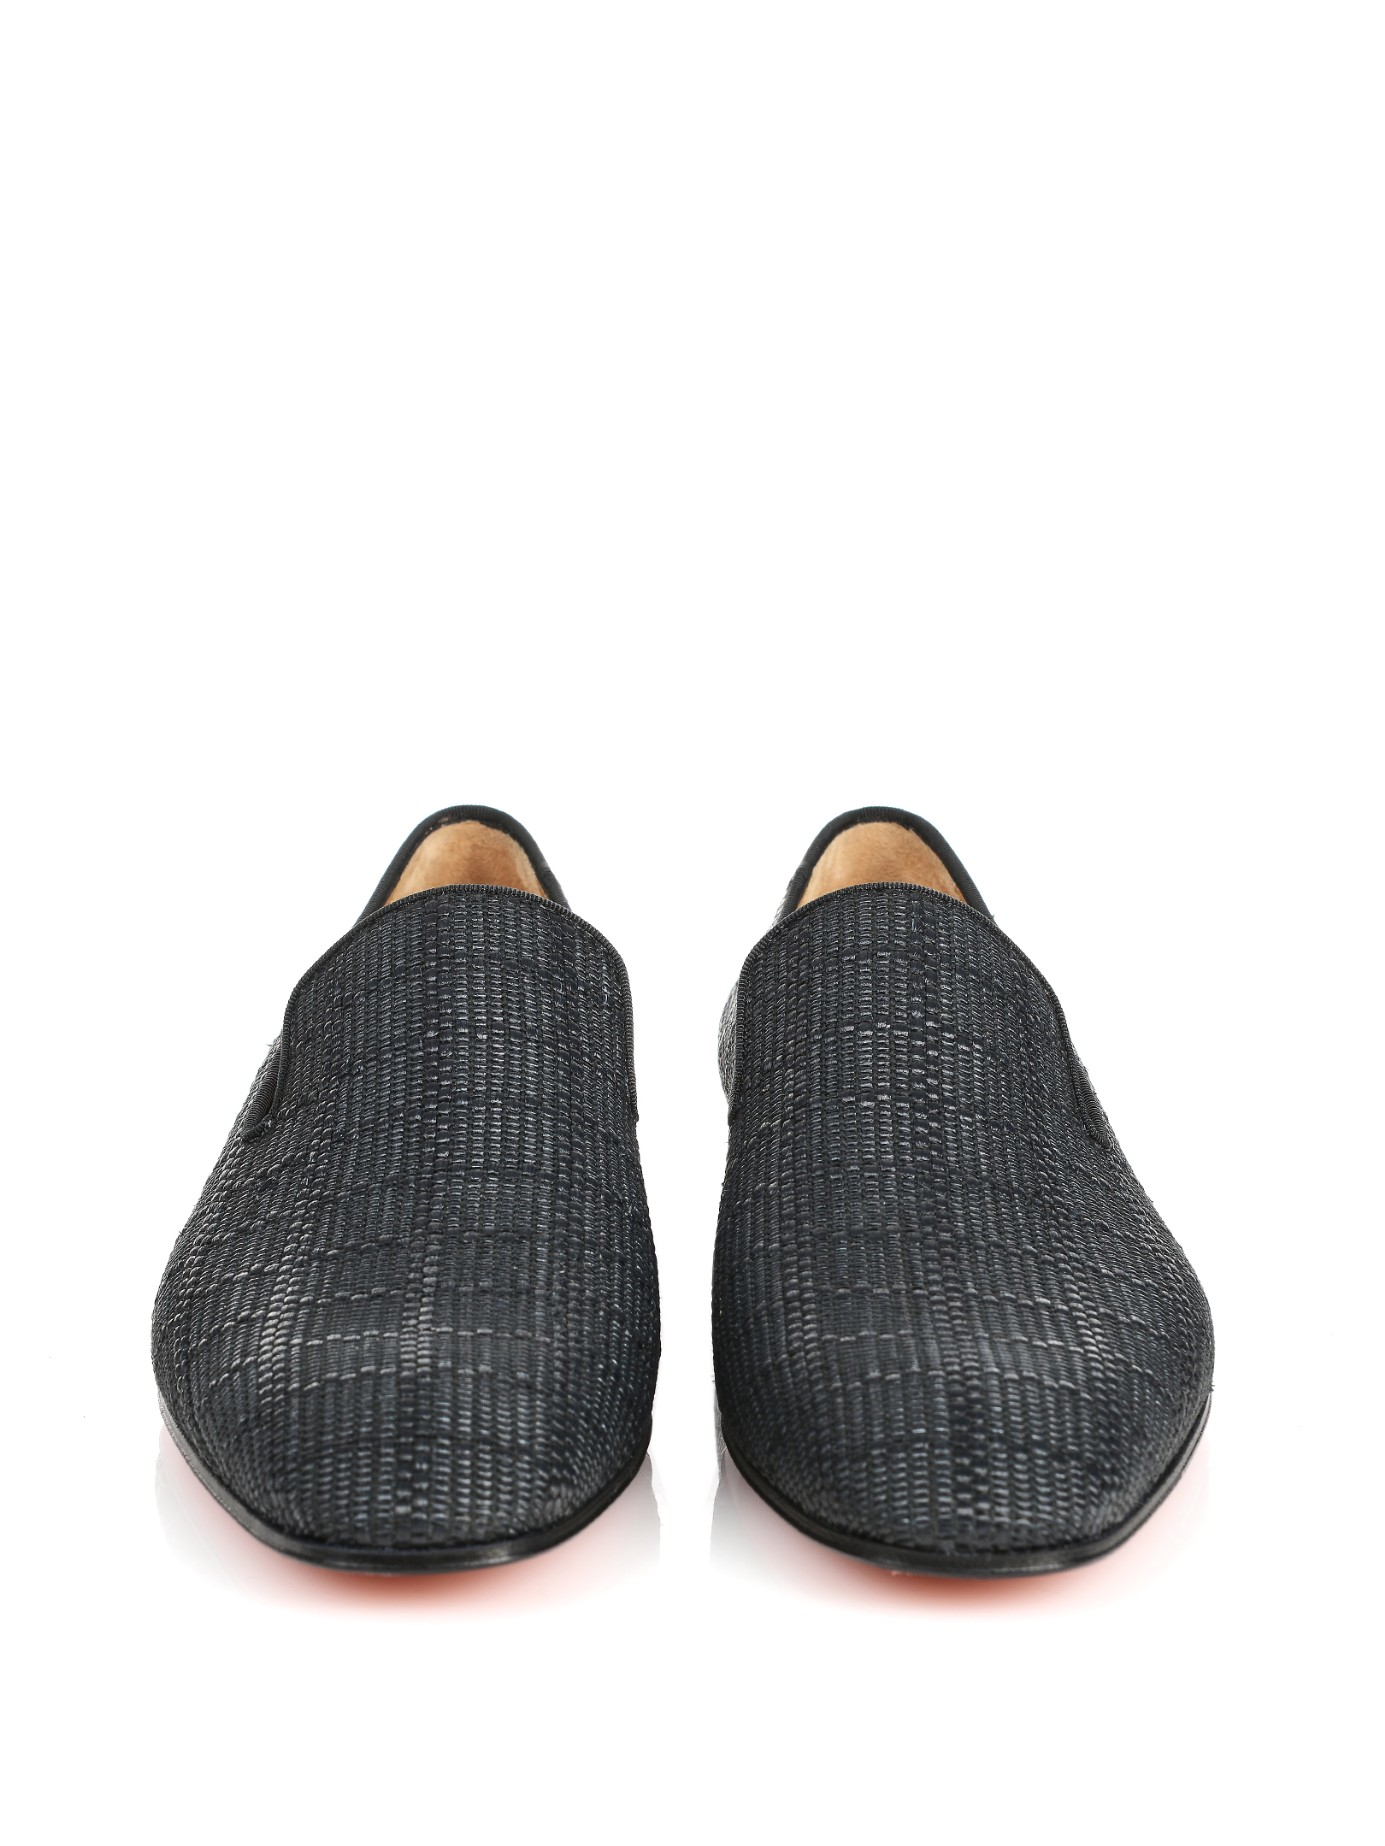 replica shoes christian louboutin - Christian louboutin Dandelion Woven Loafers in Gray for Men (BLACK ...